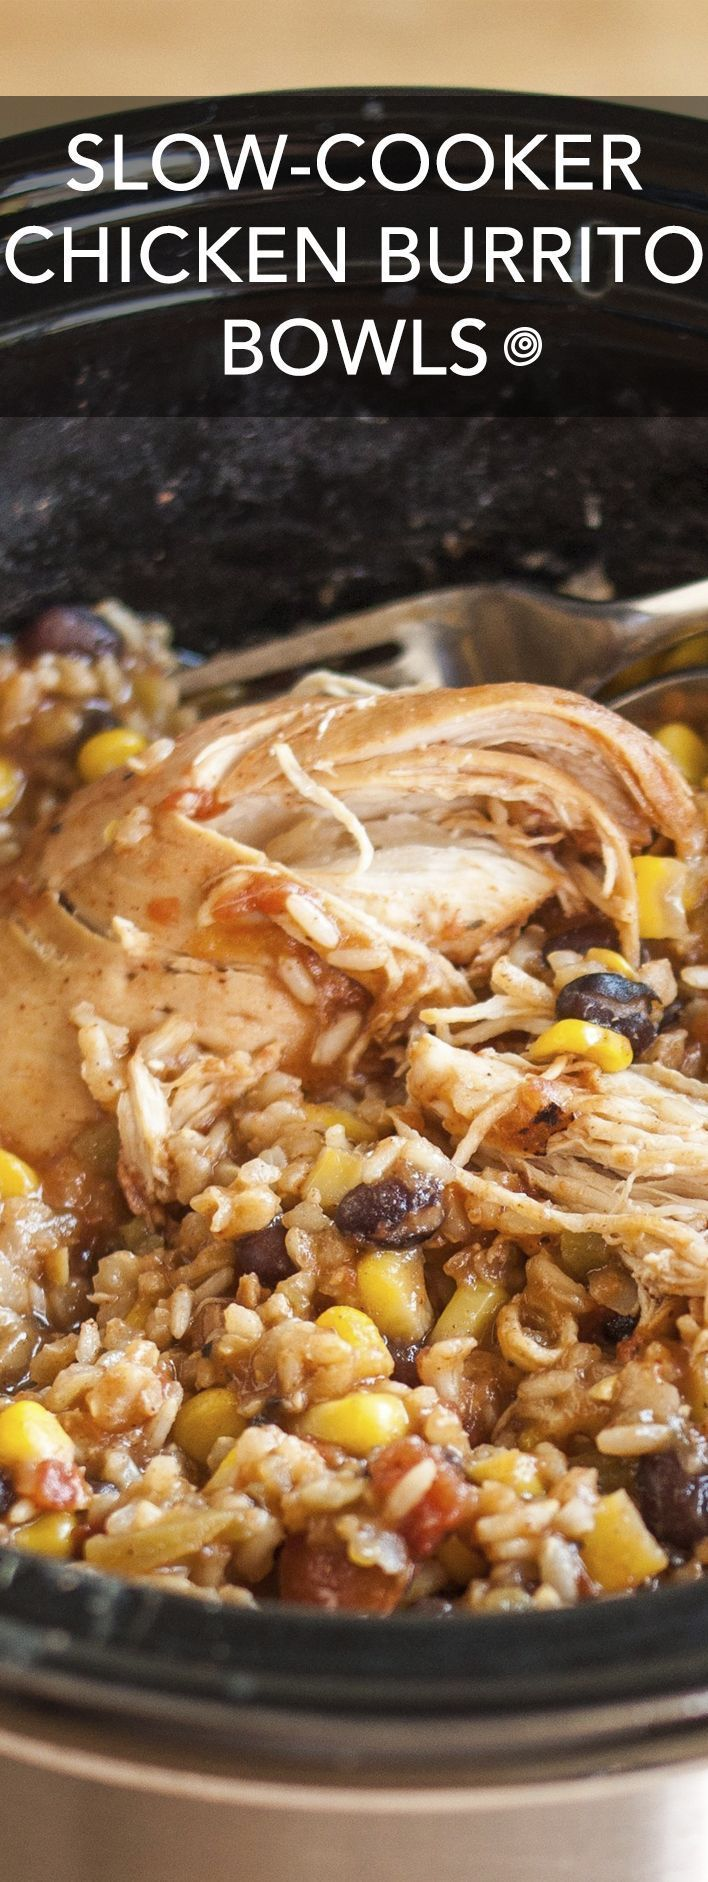 Chicken Burrito Bowls Recipe. This EASY crockpot chicken dinner is soon to be one of your favorite meals! I don't know anyone who doesn't like Mexican food, and this simple rice bowl is a party in your crock pot!Slow-Cooker Chicken Burrito Bowls Recipe. This EASY crockpot chicken dinner is soon to be one of your favorite meals! I don't know anyone who d...